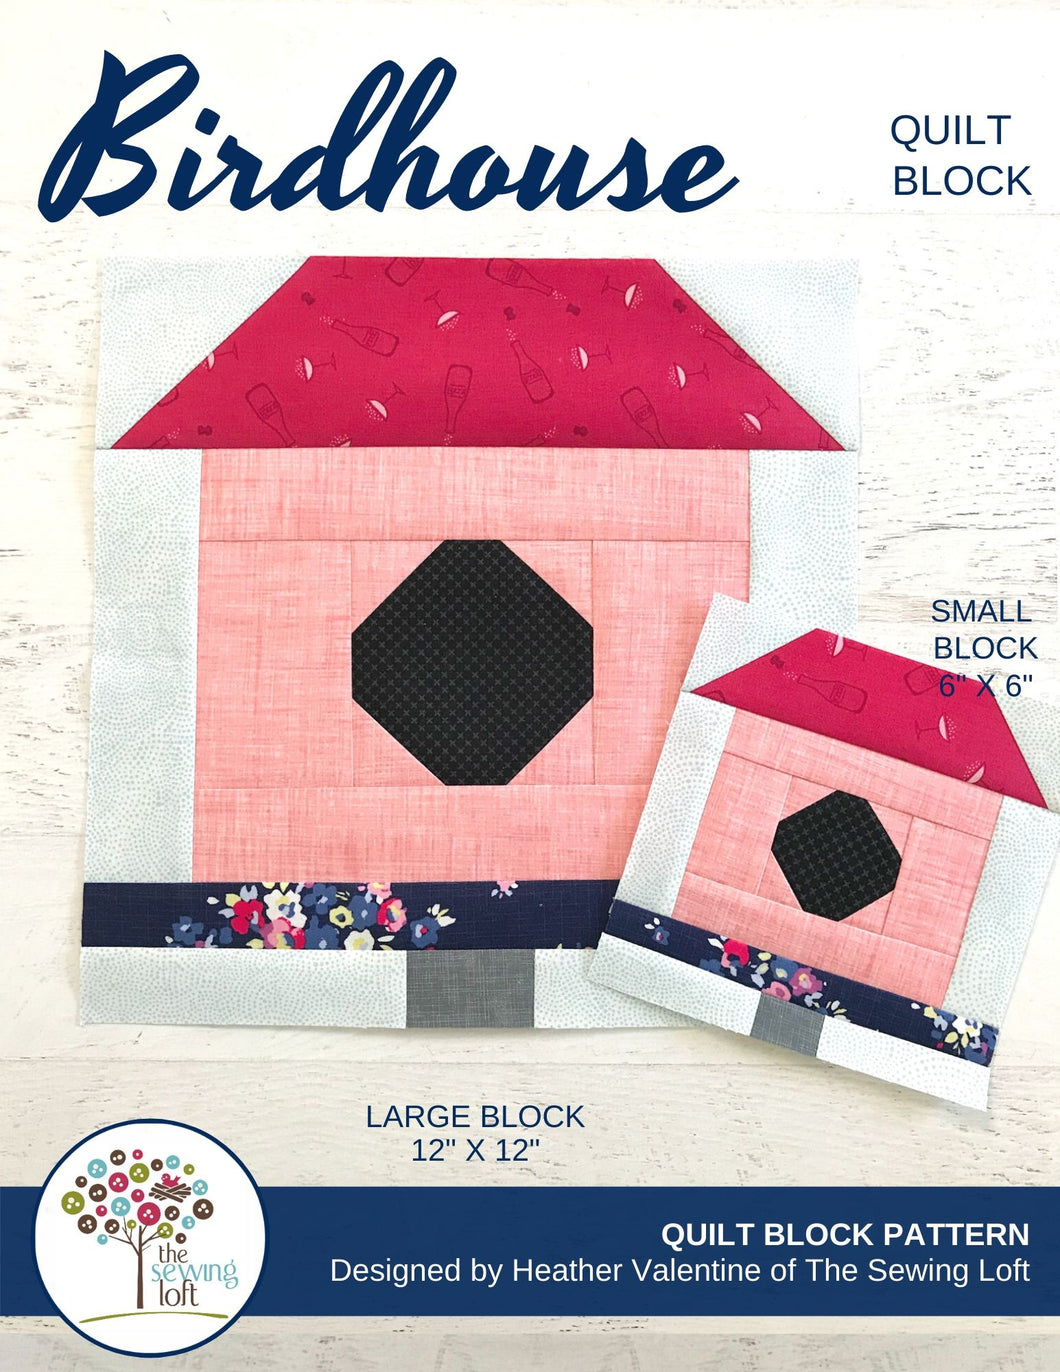 Birdhouse Quilt Block Pattern